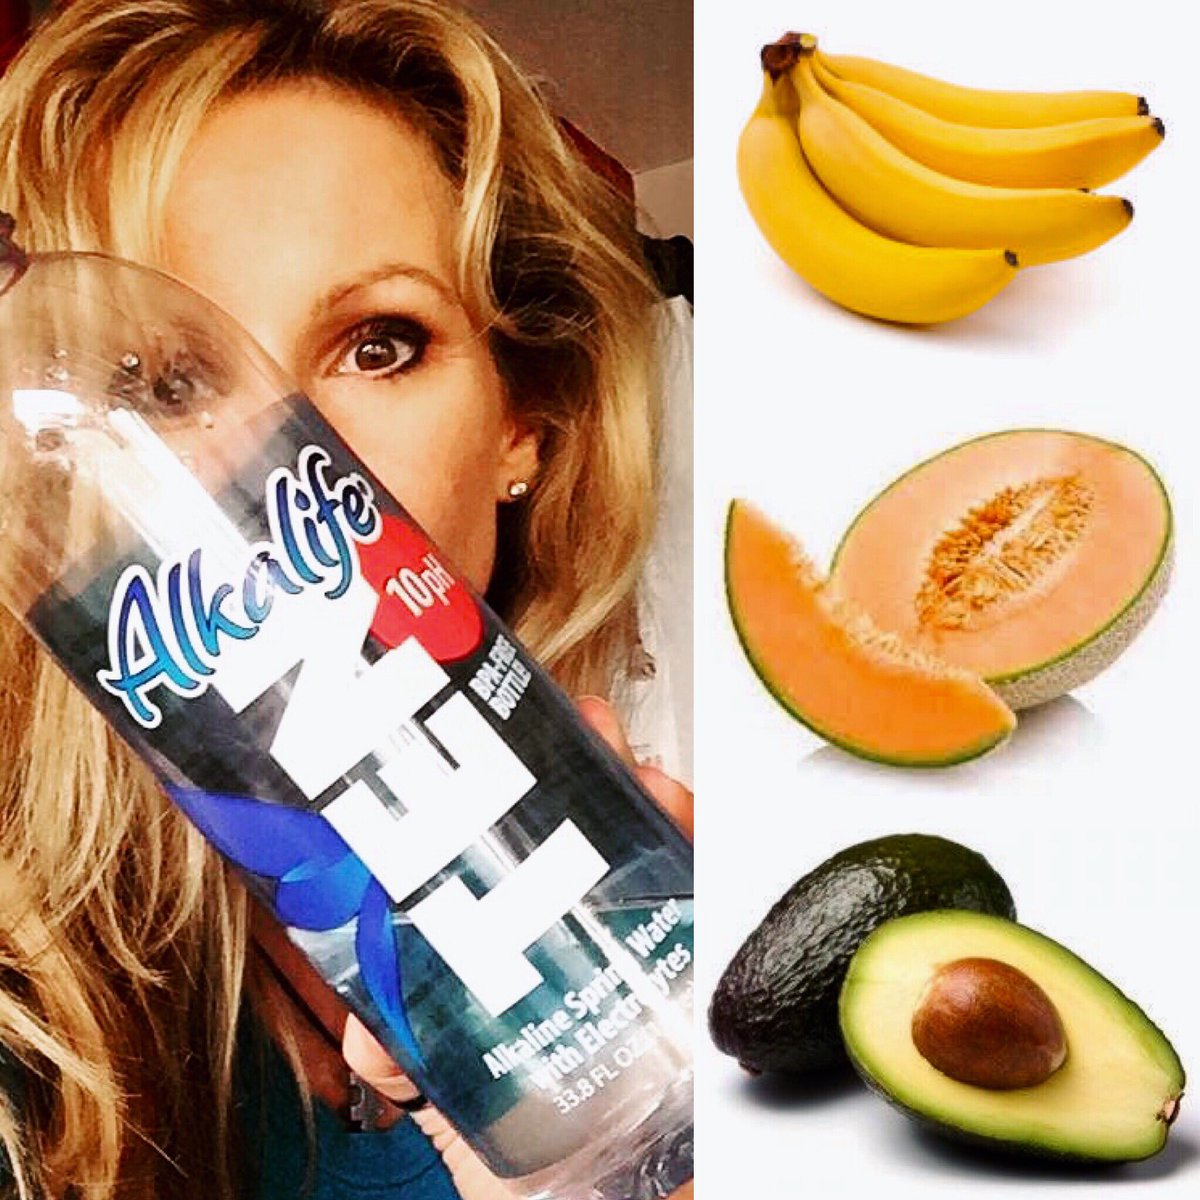 Thanksgiving eve is reportedly the biggest drinking🍸🍷🍾night of the year! Who knew?! To beat a holiday hangover like a pro, drink my fav electrolyte-enriched @TENwater & eat potassium-rich food. For more tips see my @cnnhealth article  https://t.co/2pzQonwfvh https://t.co/rpRqu1Uk6x